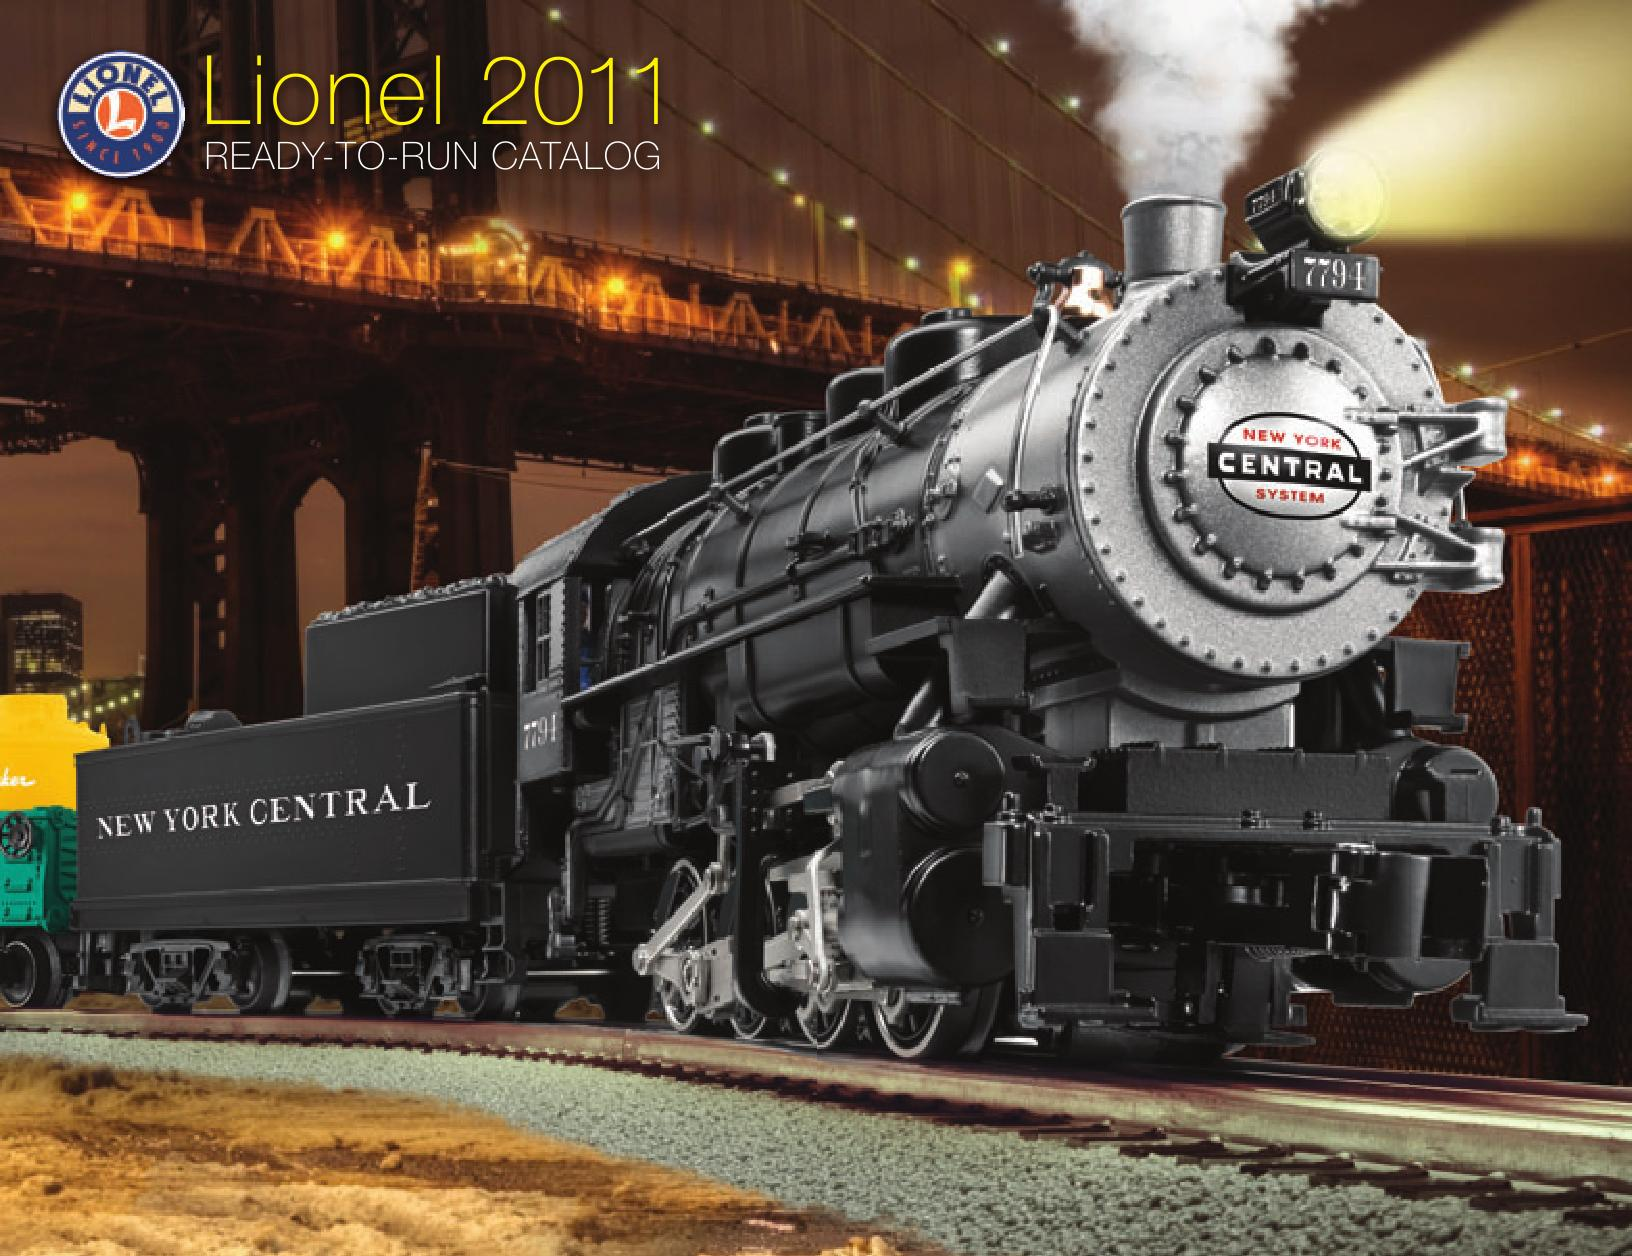 Lionel Catalogs - Ready To Run 2011